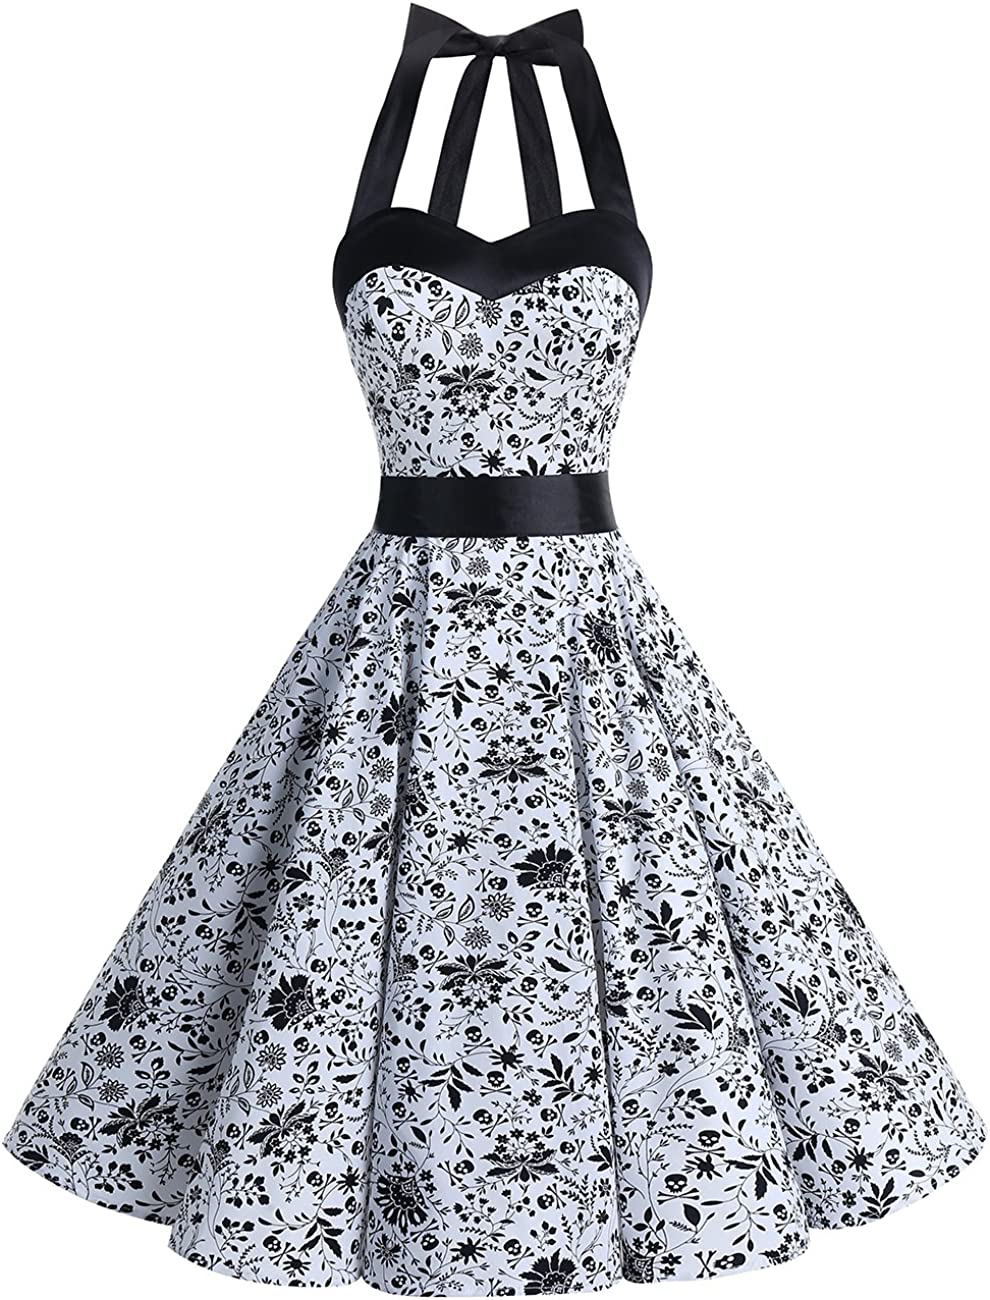 TALLA XS. Dresstells® Halter 50s Rockabilly Polka Dots Audrey Dress Retro Cocktail Dress White Skull XS